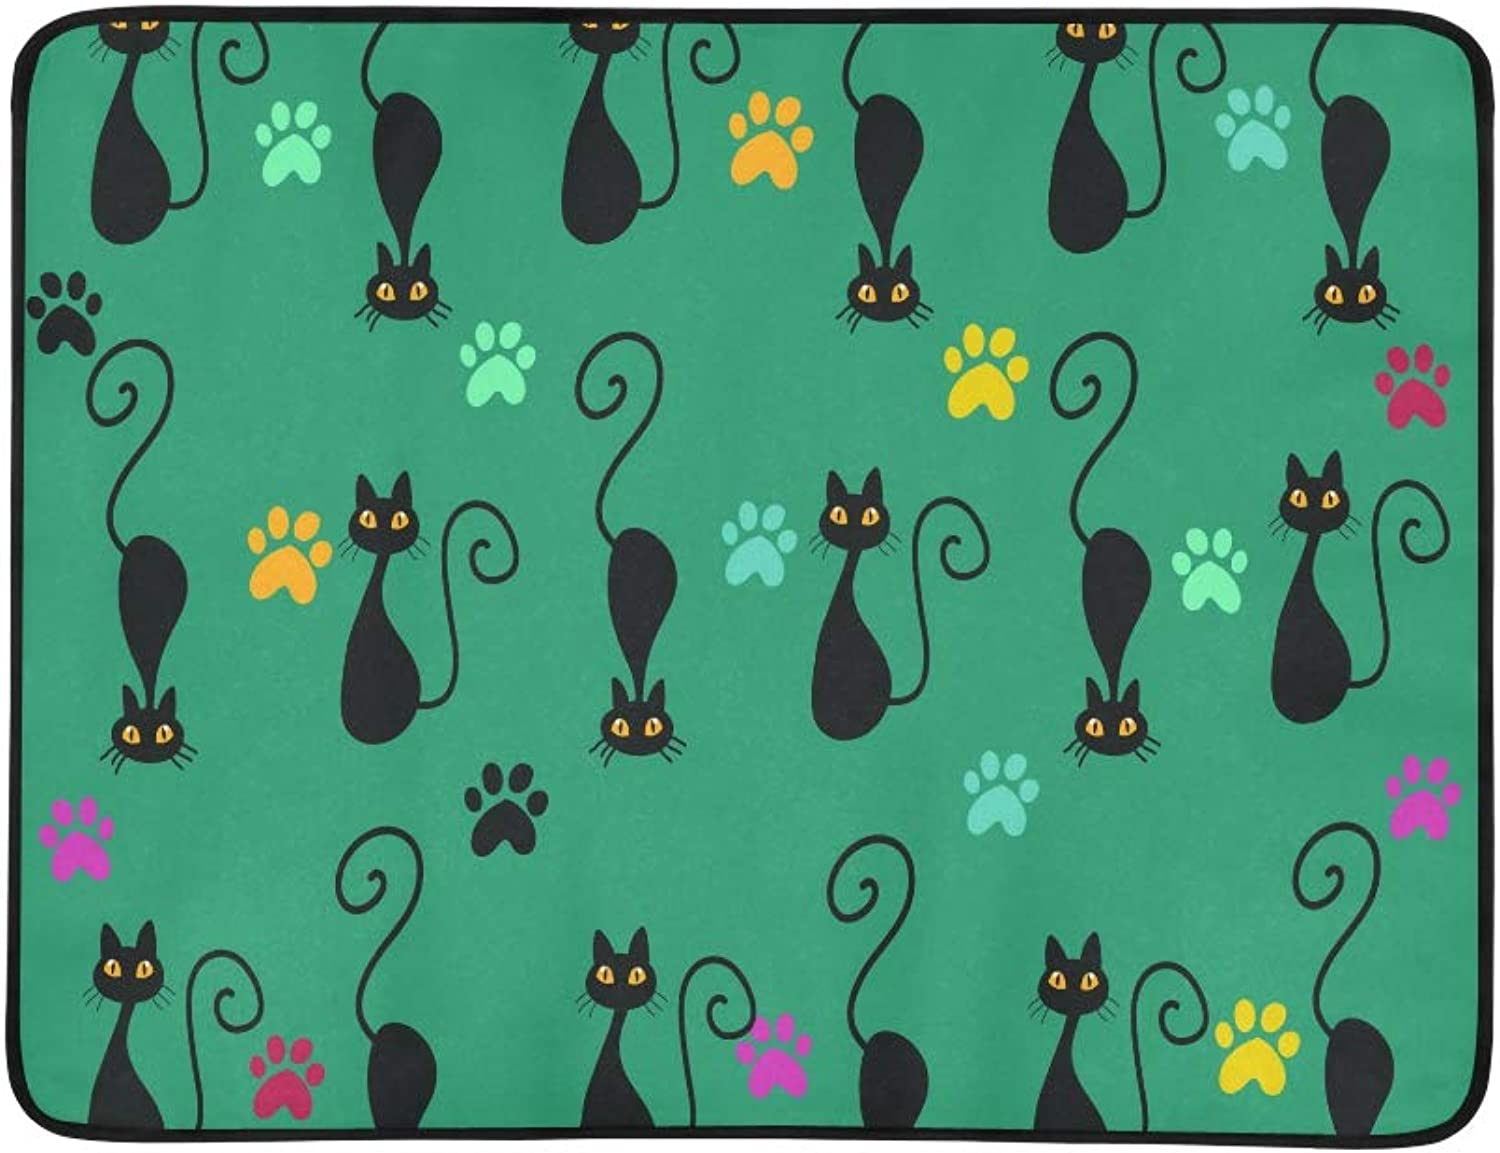 Cute Black Cats and Colourful Footprints Pattern Portable and Foldable Blanket Mat 60x78 Inch Handy Mat for Camping Picnic Beach Indoor Outdoor Travel